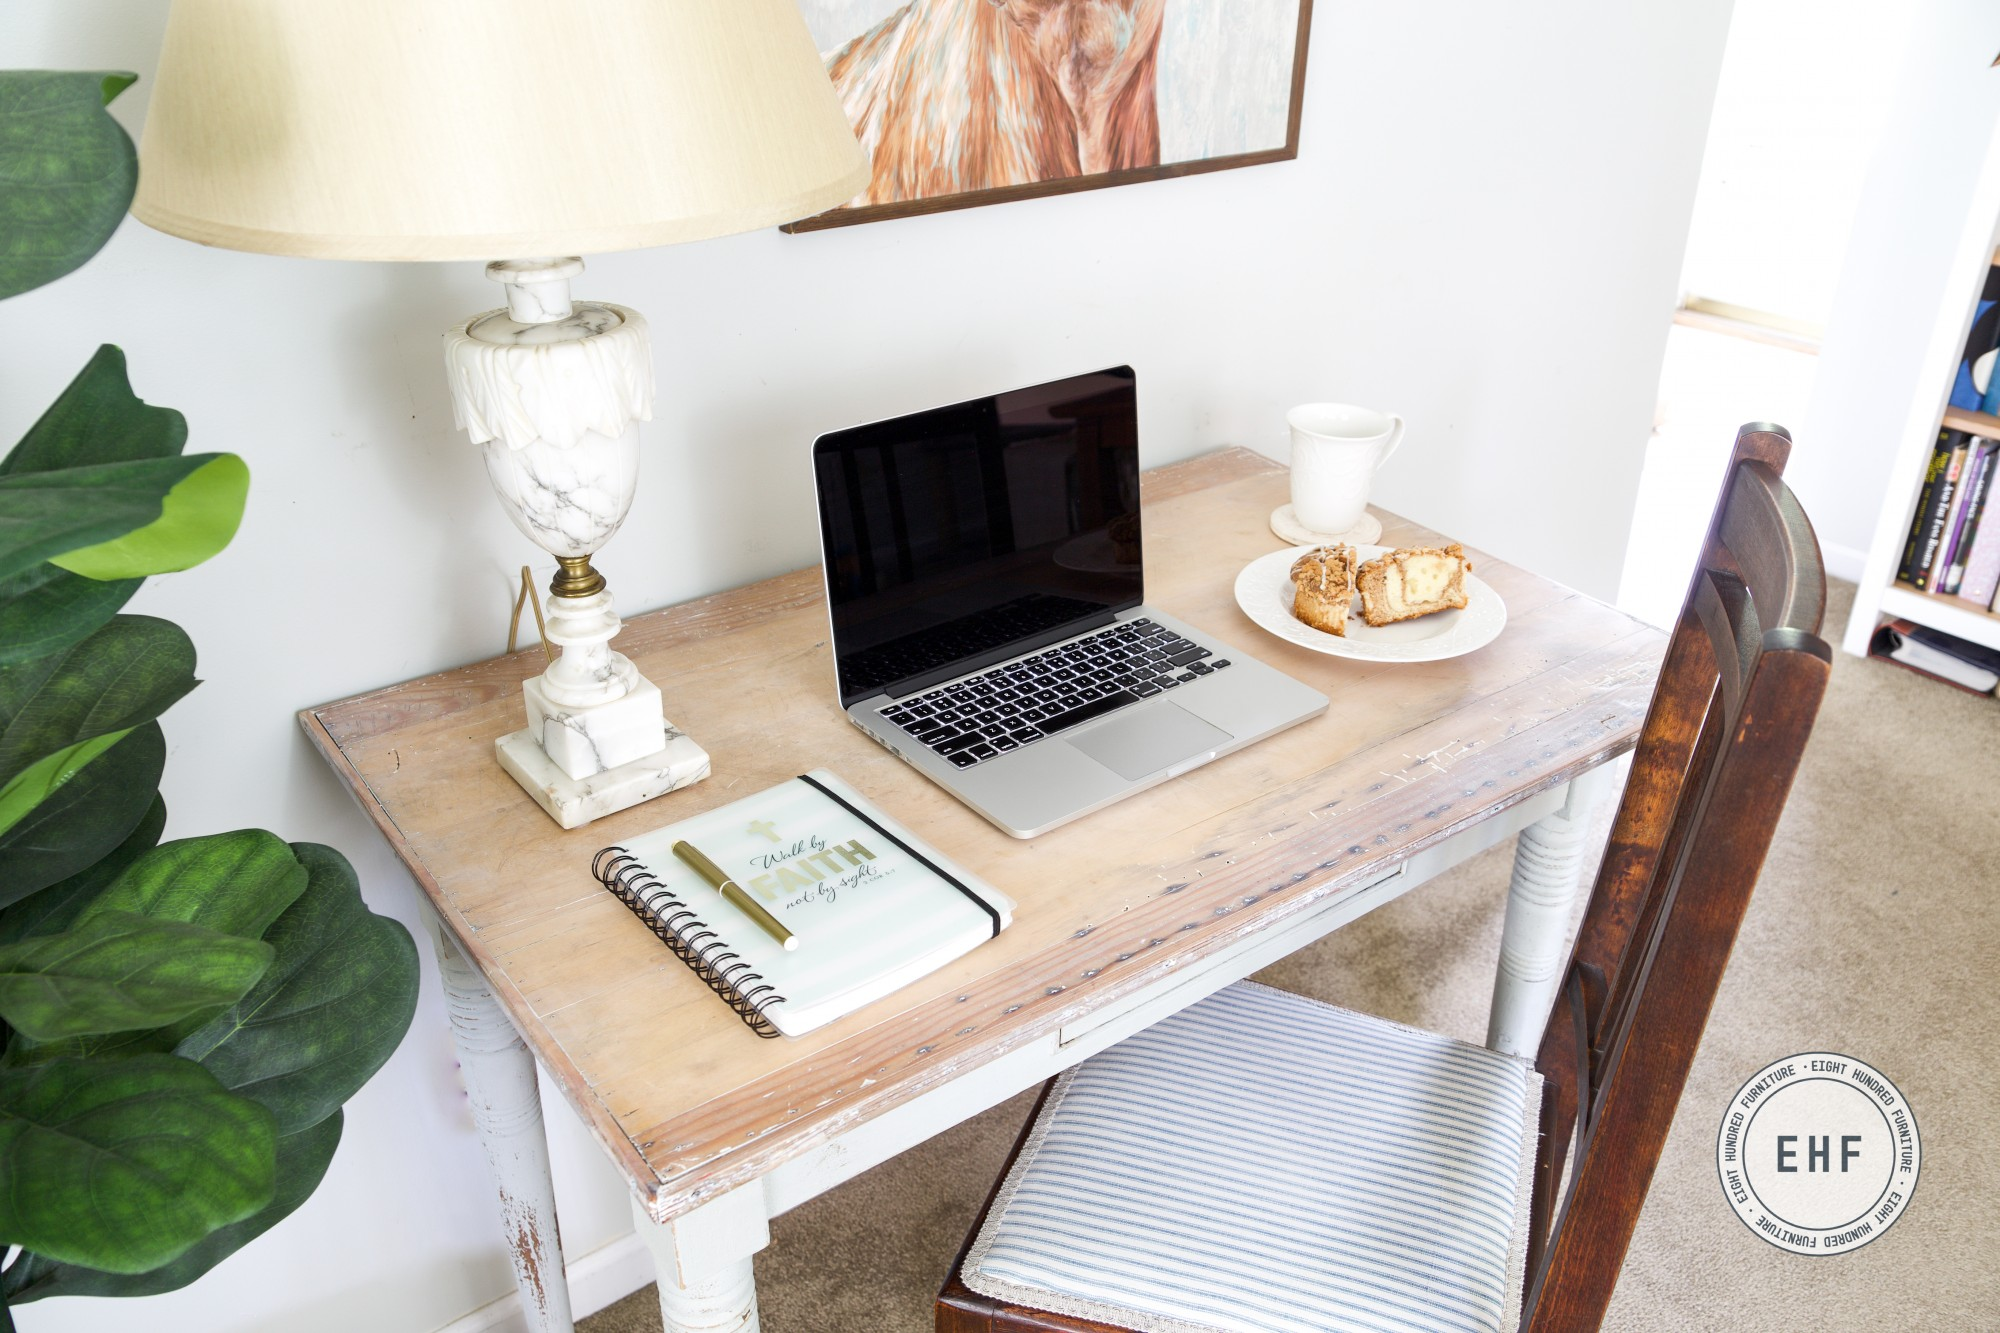 Top of desk painted in Mora by Miss Mustard Seed's Milk Paint with a White Wax top